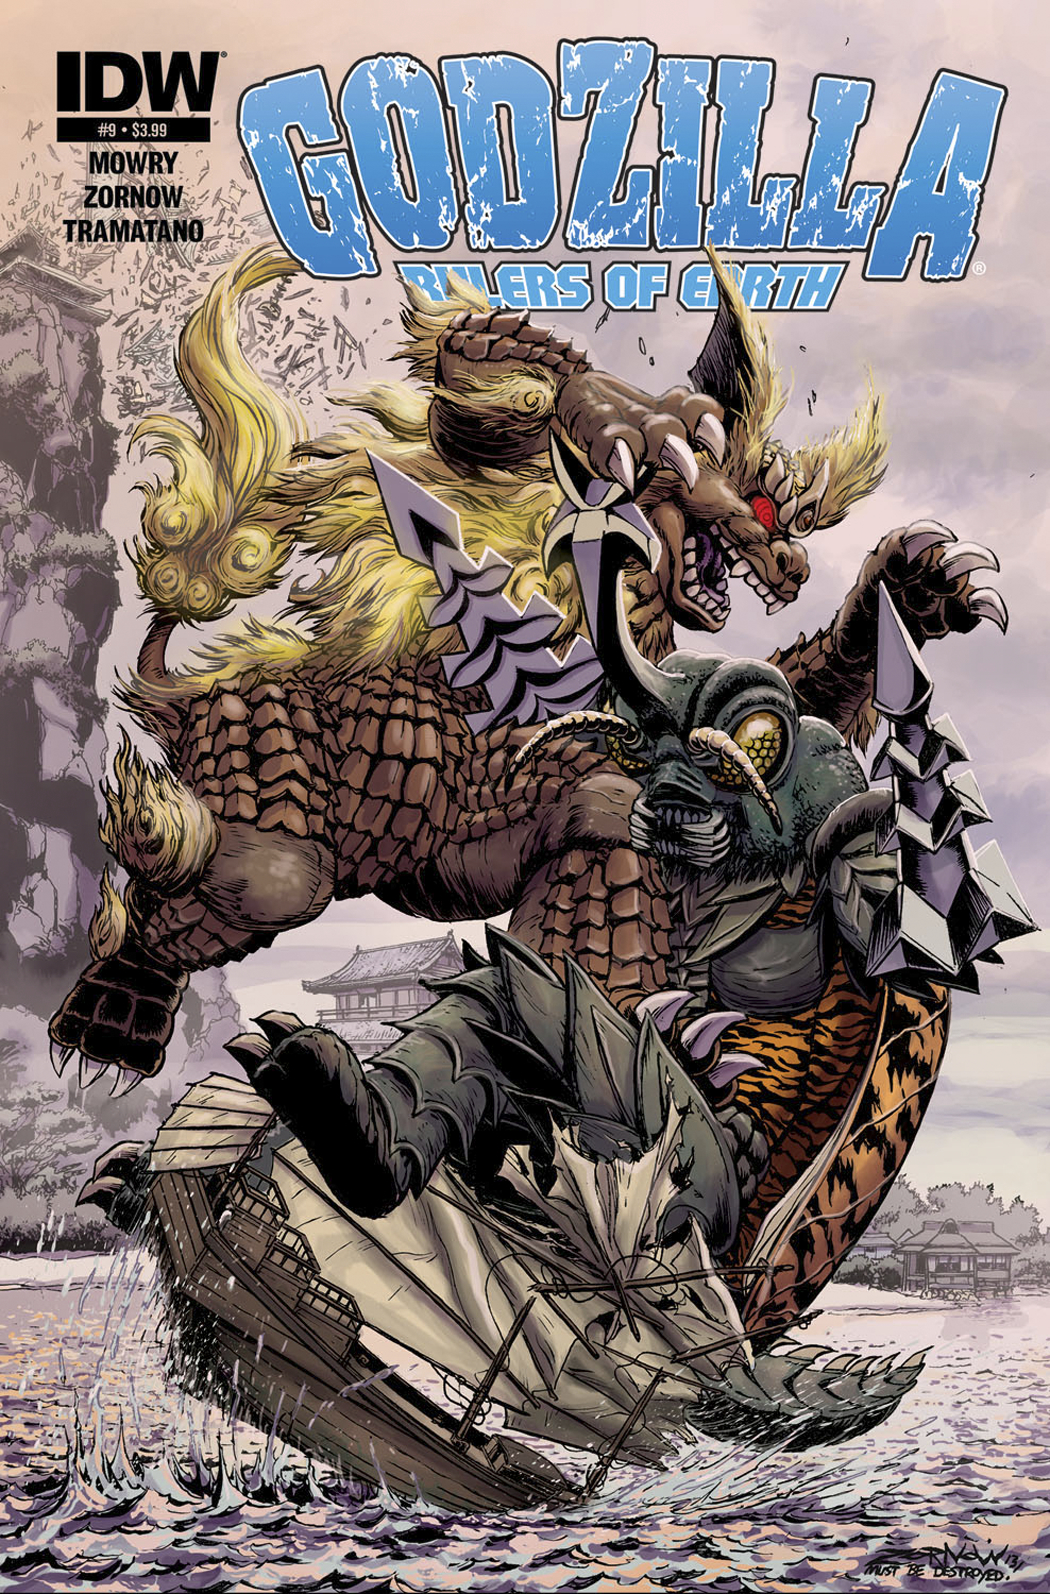 GODZILLA RULERS OF THE EARTH #9